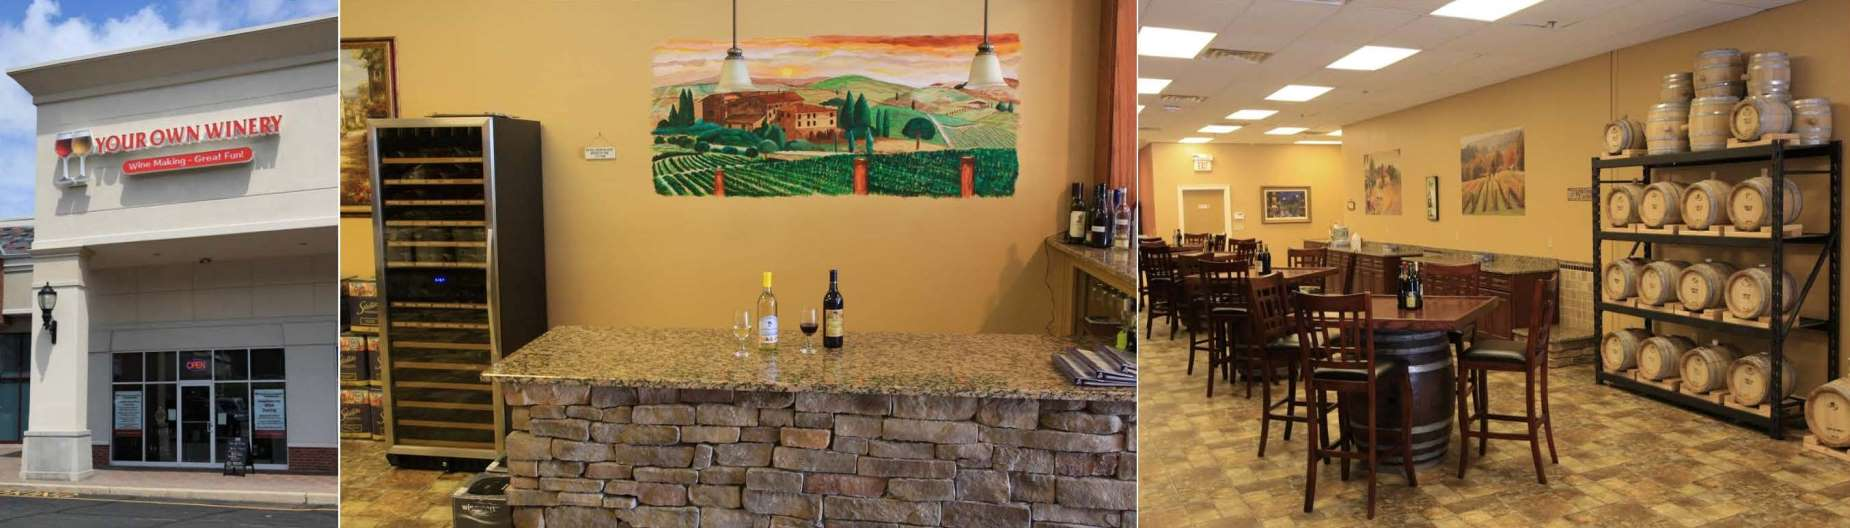 Your Own Winery Shop Images